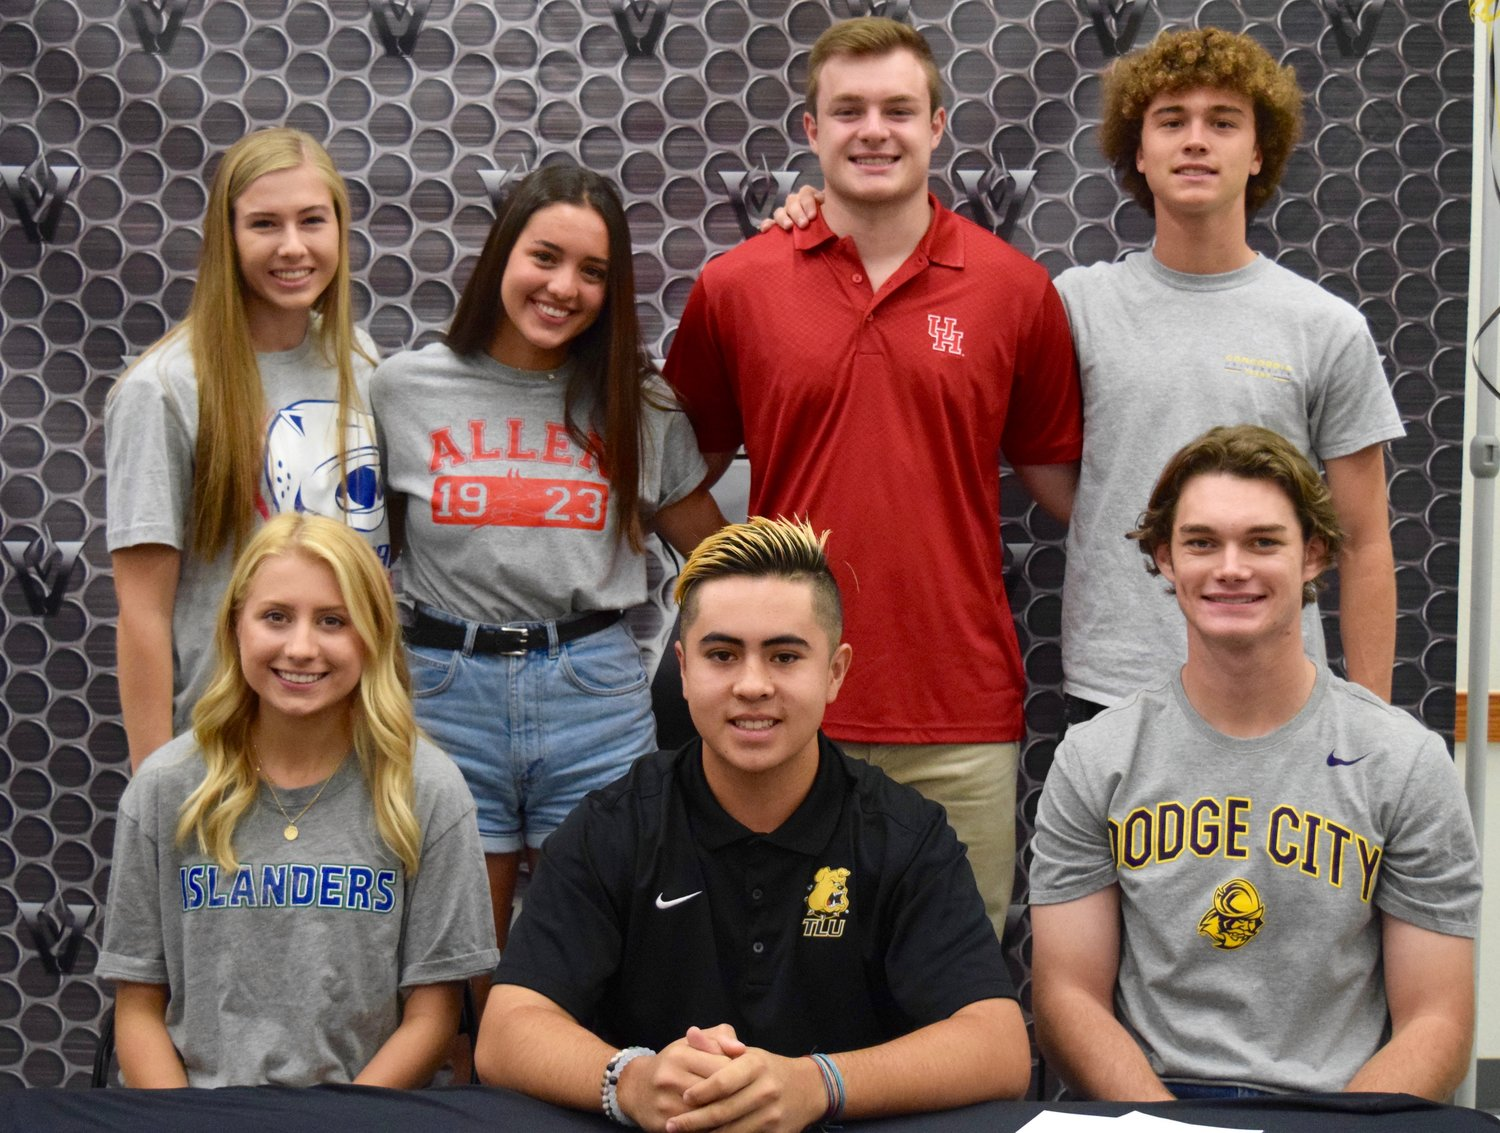 Back row: Ina Edstrom (Track and Field, South Alabama), Adriana Santiago Guillen (Volleyball, Allen Comunity College), Davis Beal (Football, Houston), Cole McCue (Soccer, Concordia). Front row: Addie Yeats (Beach Volleyball, A&M Corpus Christi), Tyson Smith (Baseball, Texas Lutheran), Jake Miller (Baseball, Dodge City Community College).